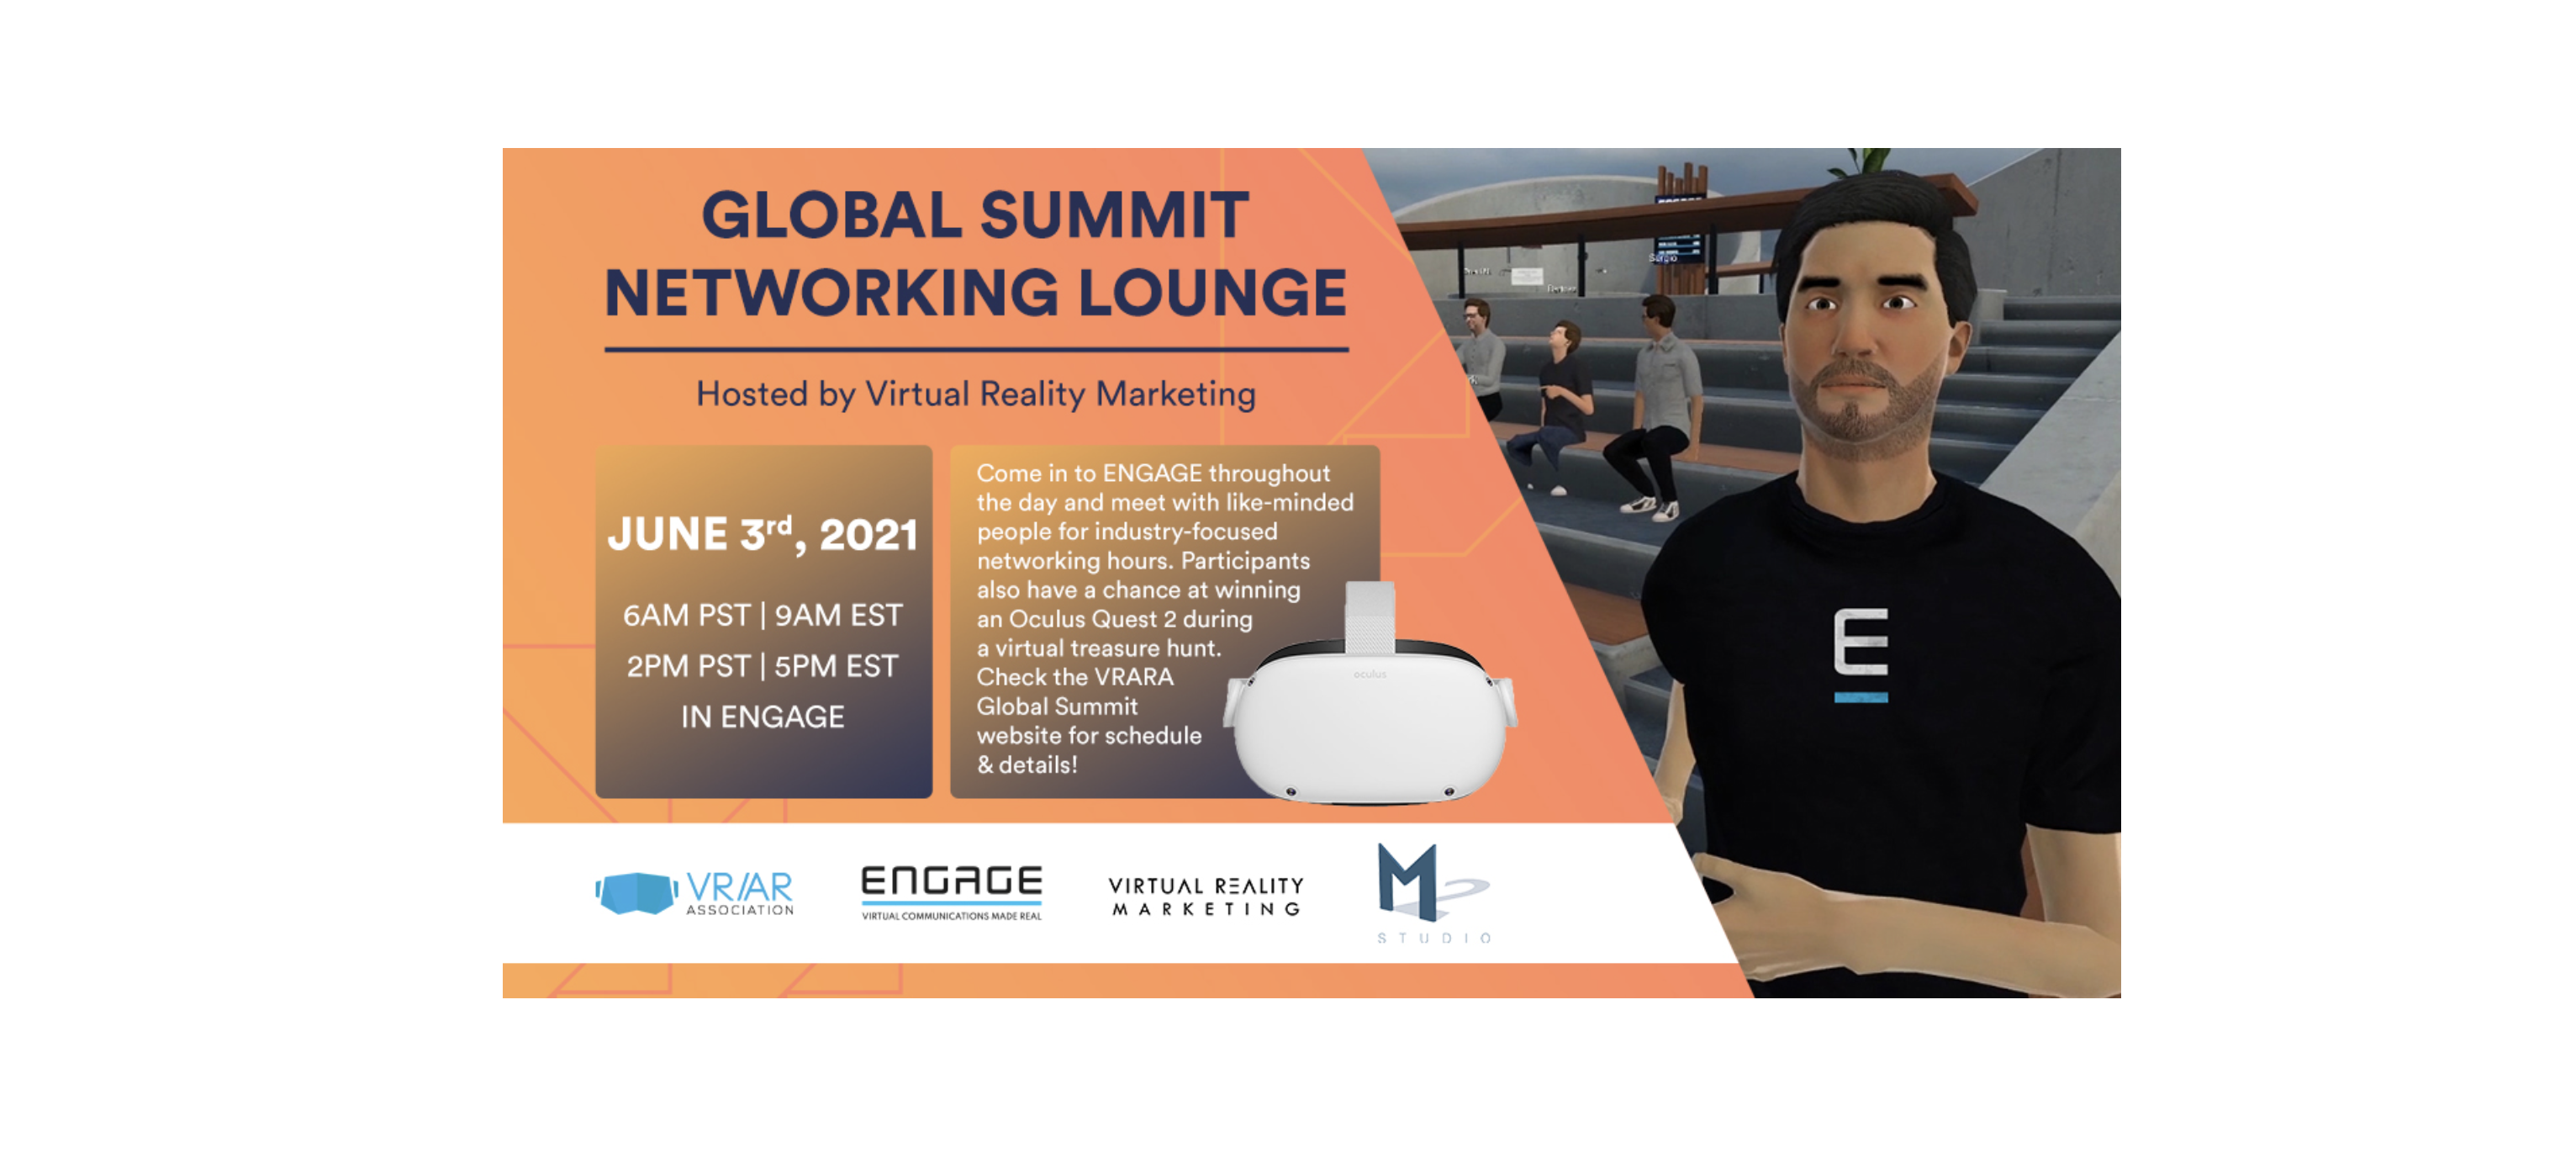 We invite you to the Global Summit Networking Lounge